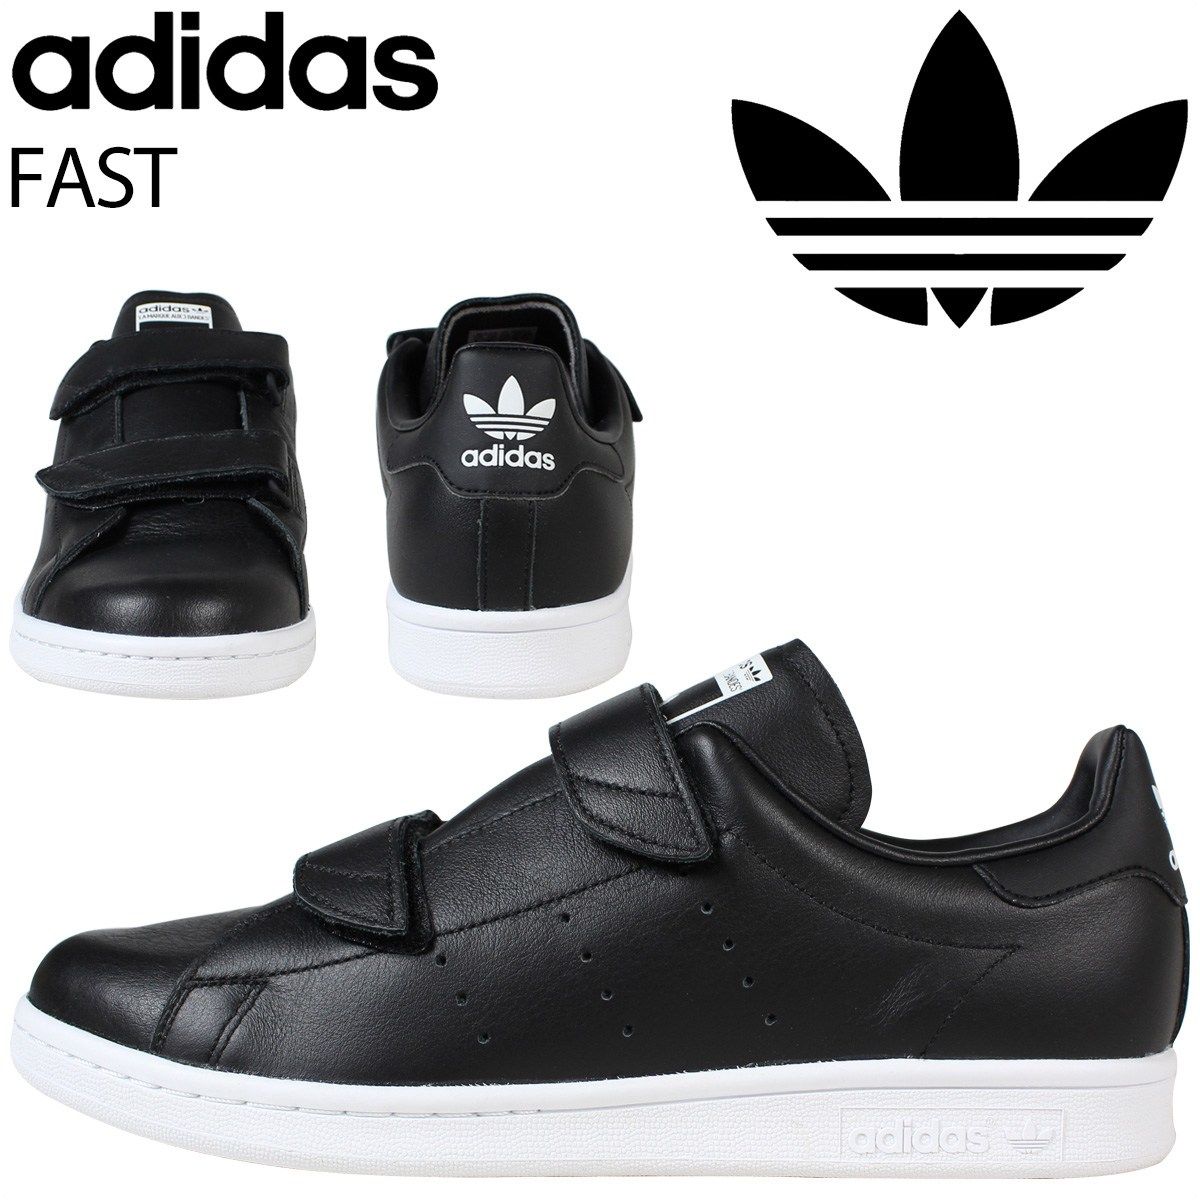 check out 7f29f cfea5 Classic Mark symbolizes the adidas three lines are simple yet also said the  face of the brand impact and the classic